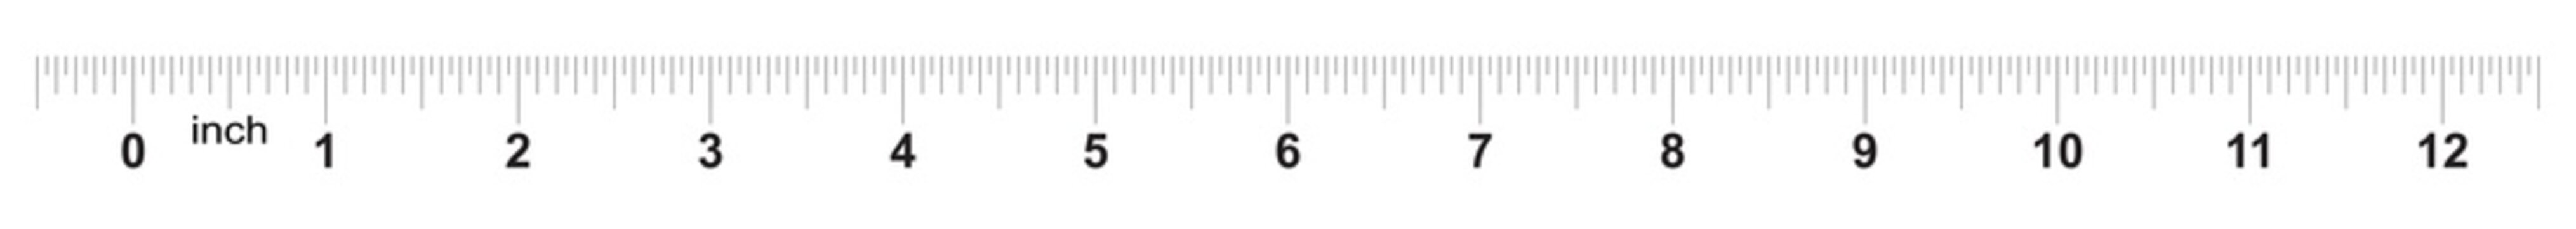 Ruler 12 inches. Metric inch size indicator. Decimal system grid. Measuring tool